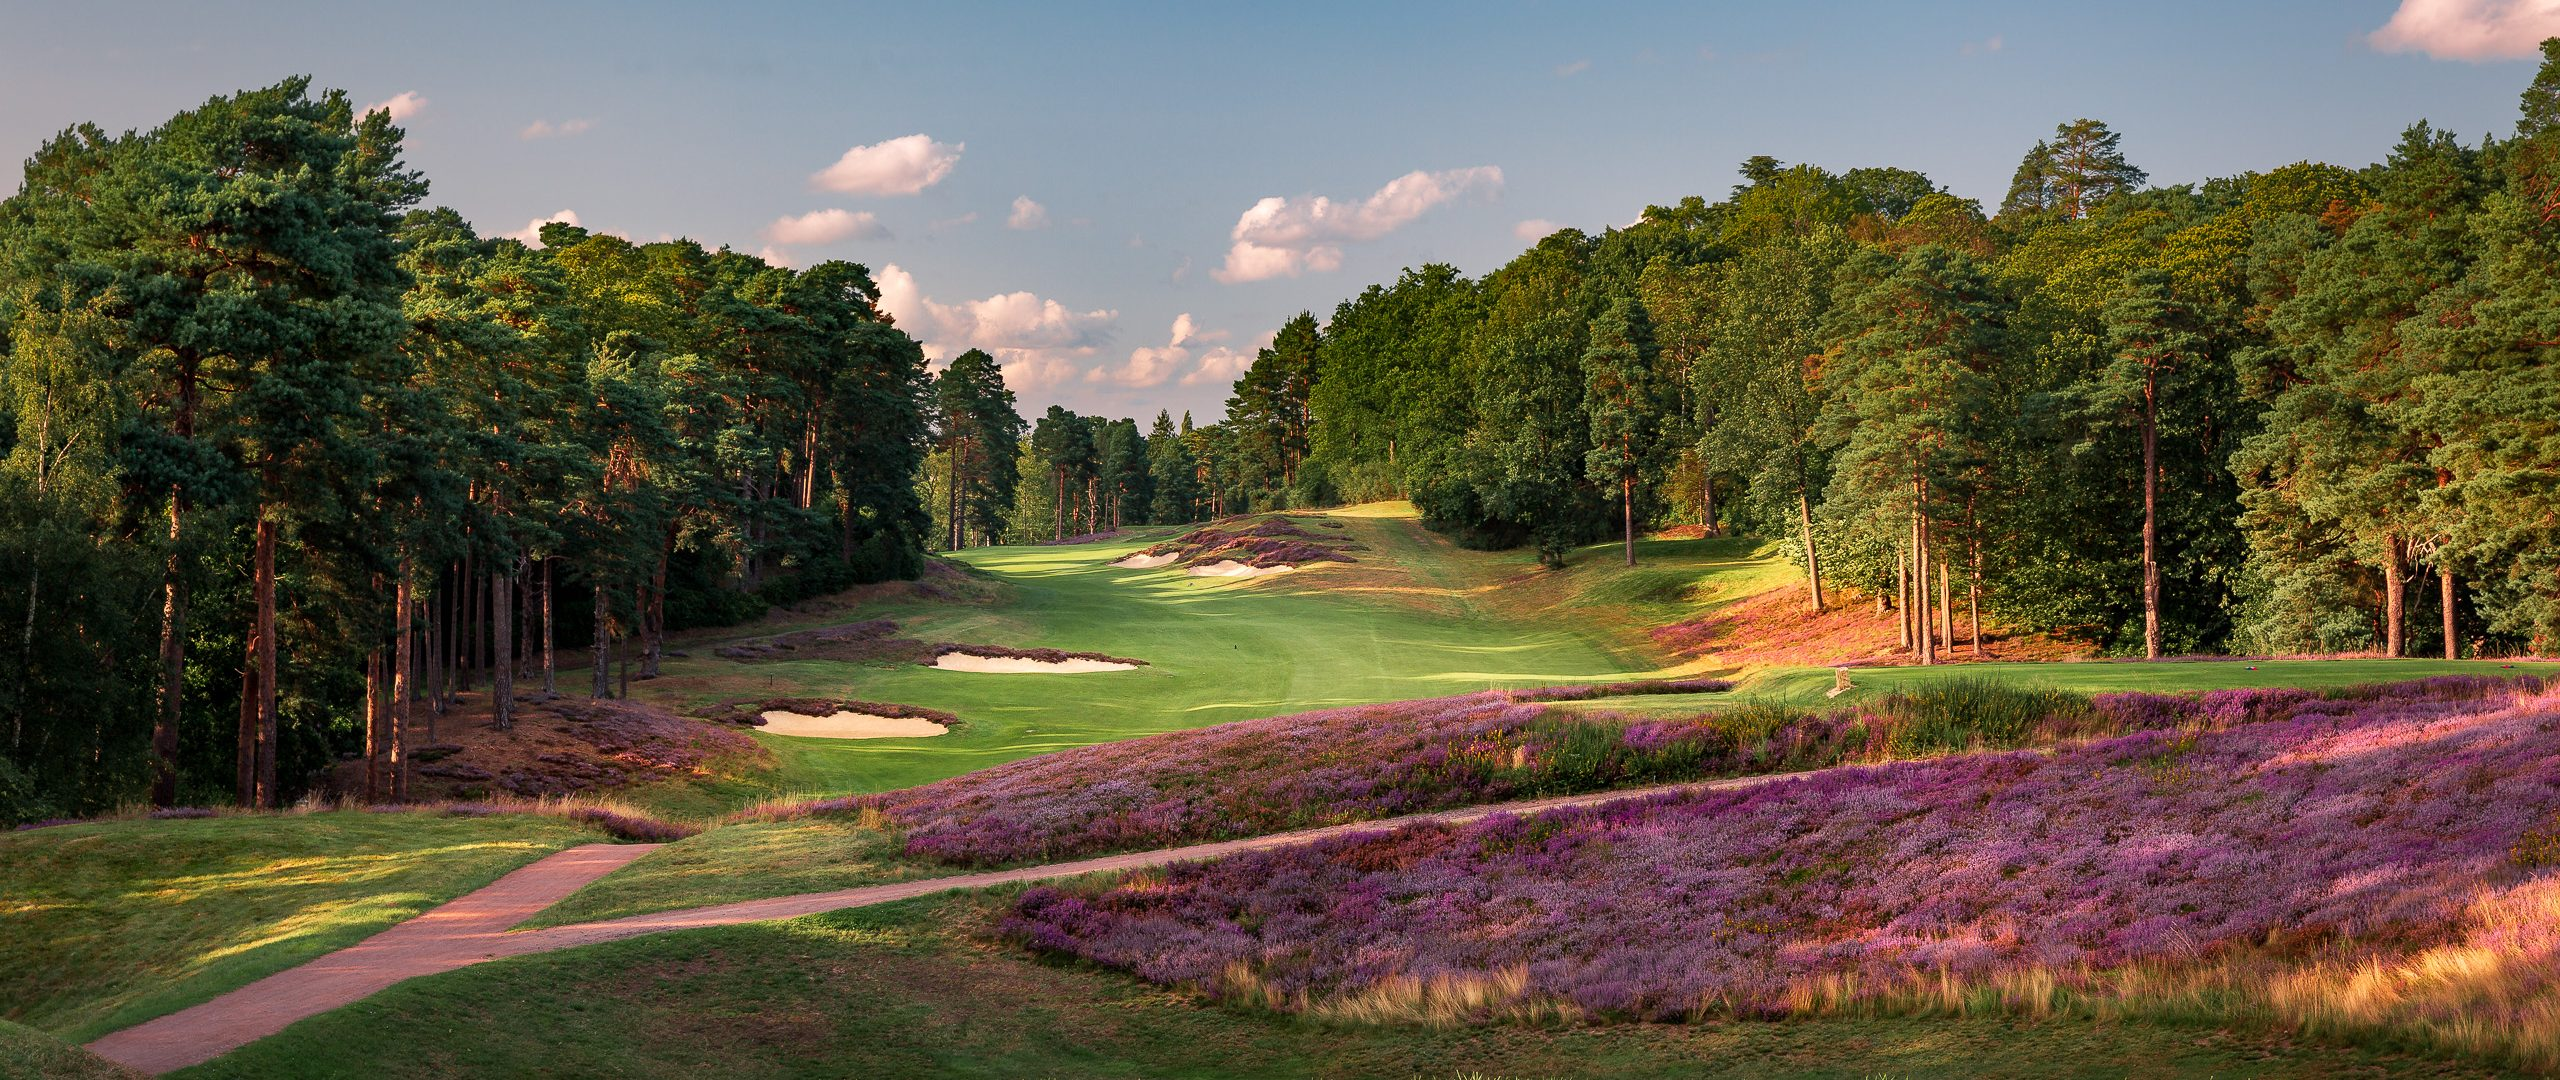 01st-Hole-St-Georges-Hill-Golf-Club-2276-Edit-2-2